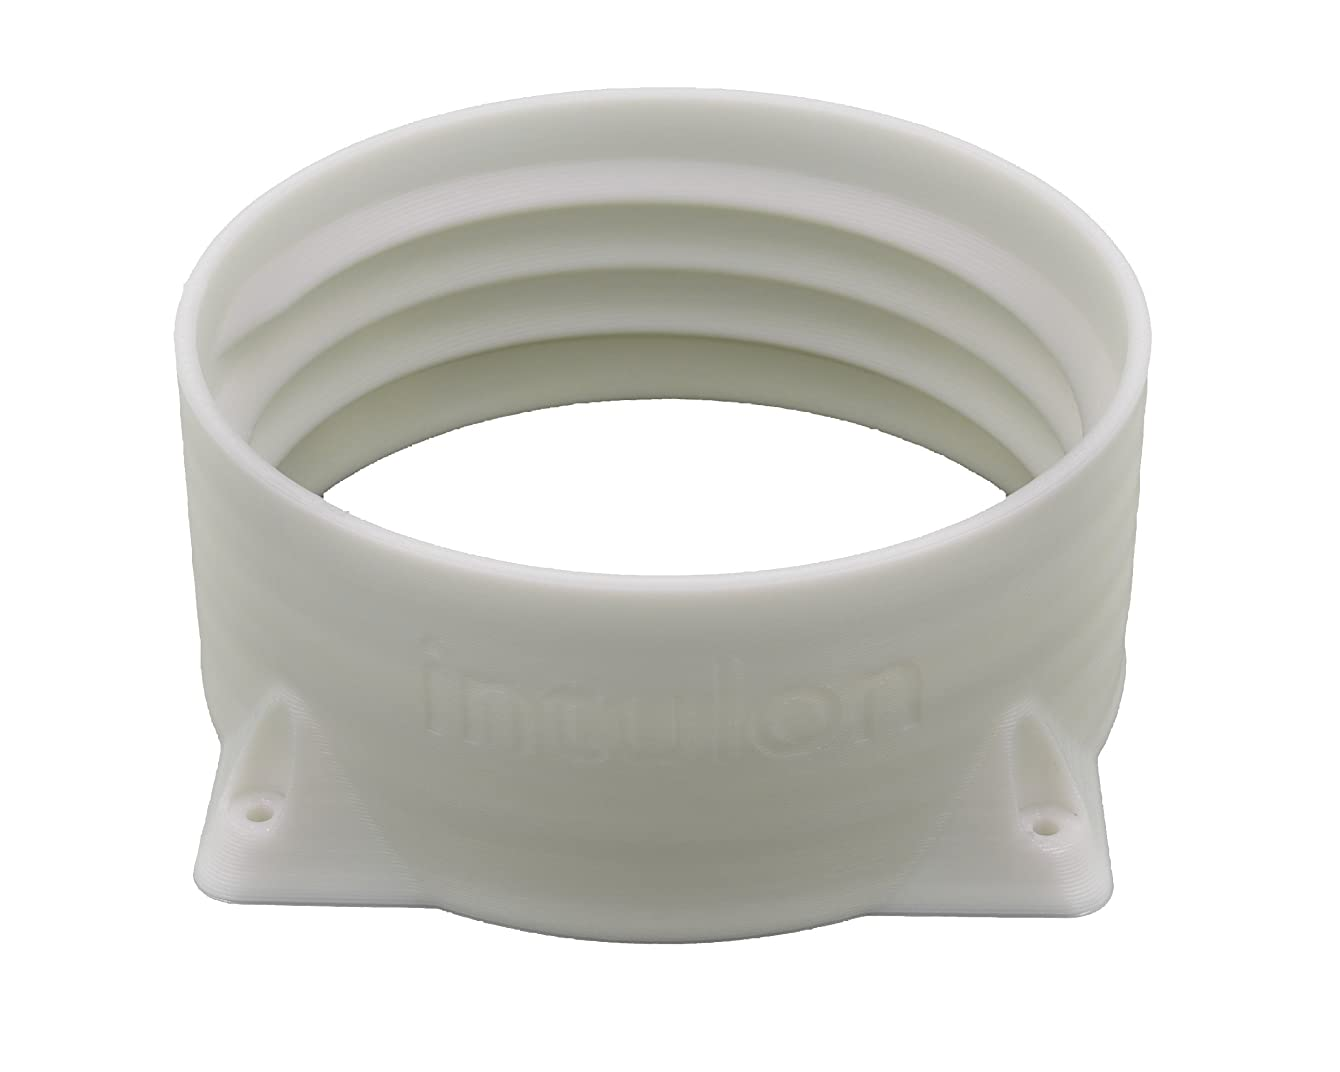 intulon 5-inch Tube Portable AC Air Conditioner Exhaust Hose Flange Wall Mount - Clockwise Thread 5CWMOUNT